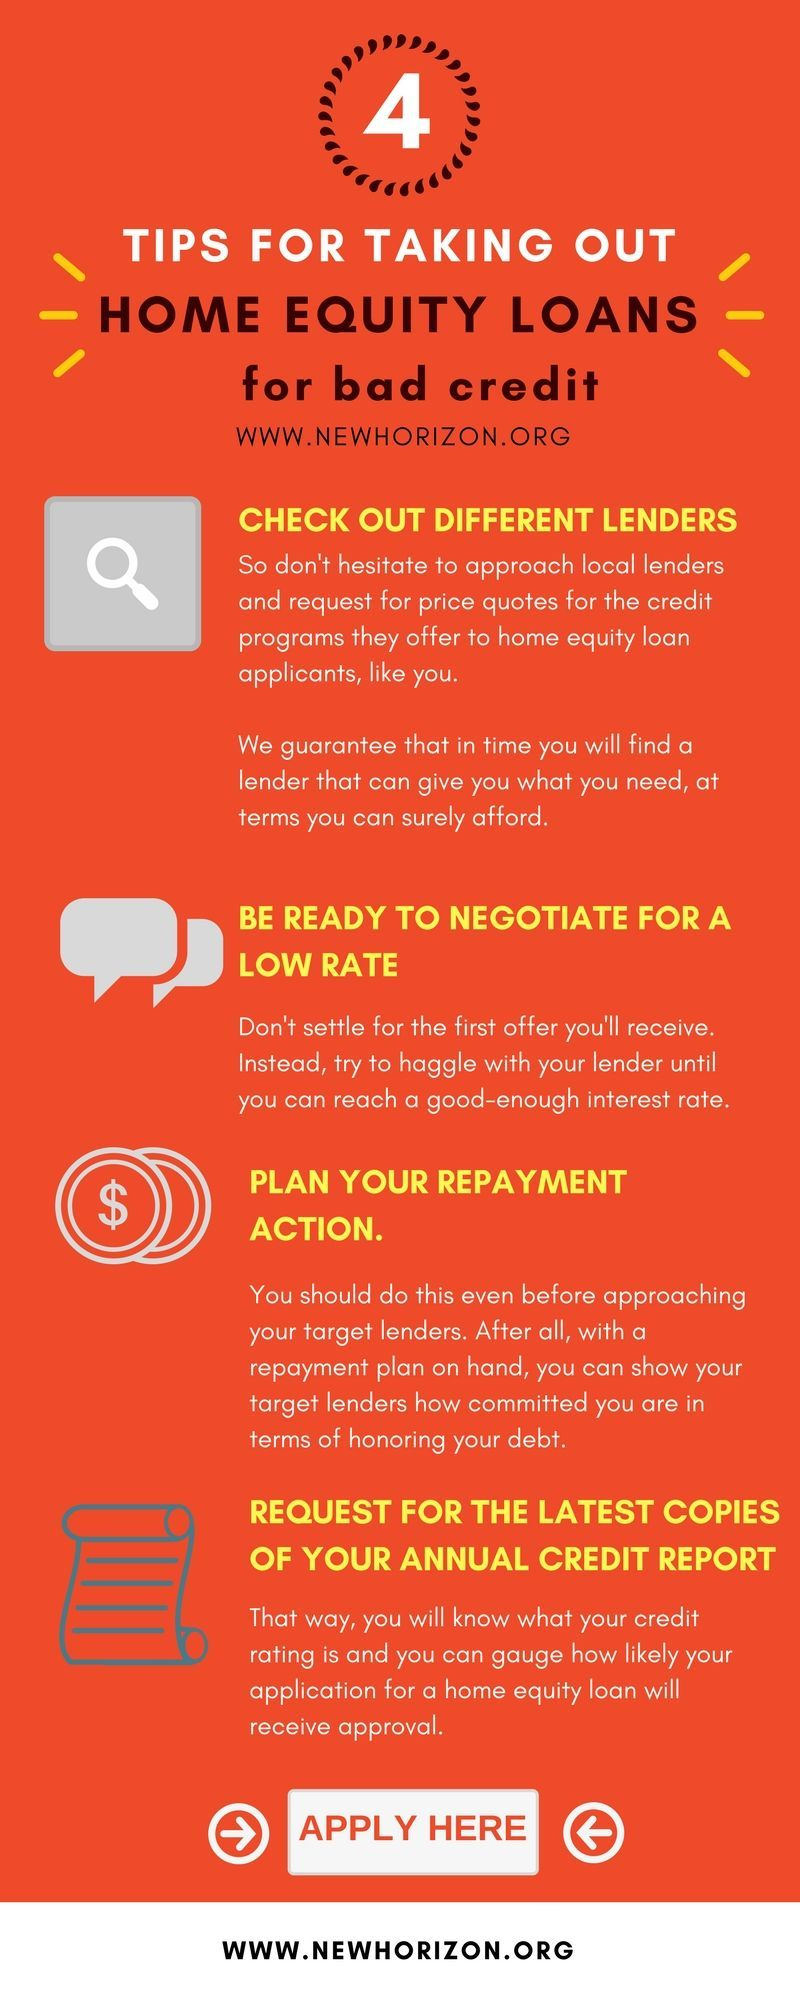 Tips For Taking Out A Guaranteed Home Equity Loan For Bad Credit Credithelp Credit Repair Advice For Everyone Pinterest Loans For Bad Credit Home Equit